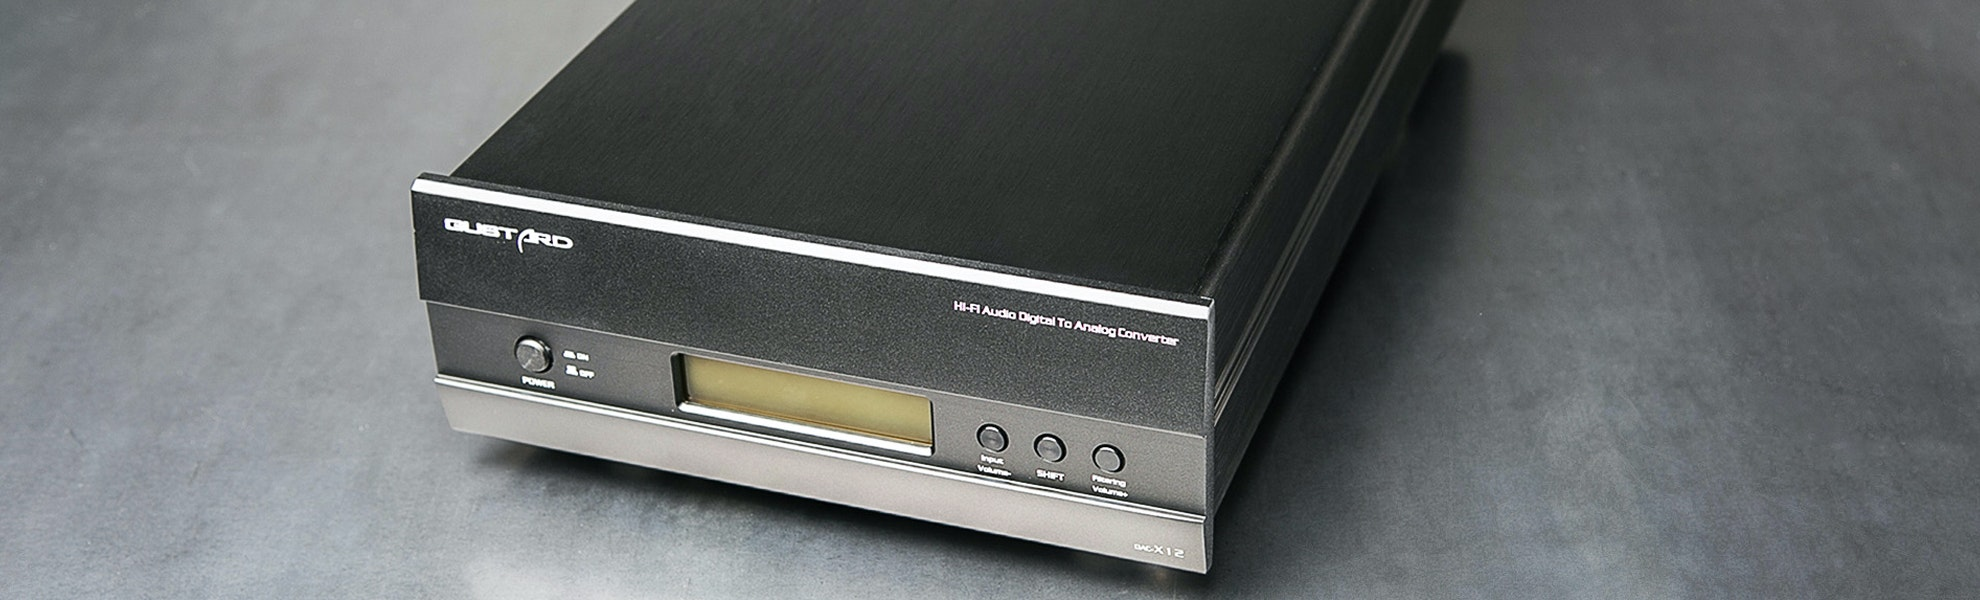 GUSTARD DAC-X12 USB Version